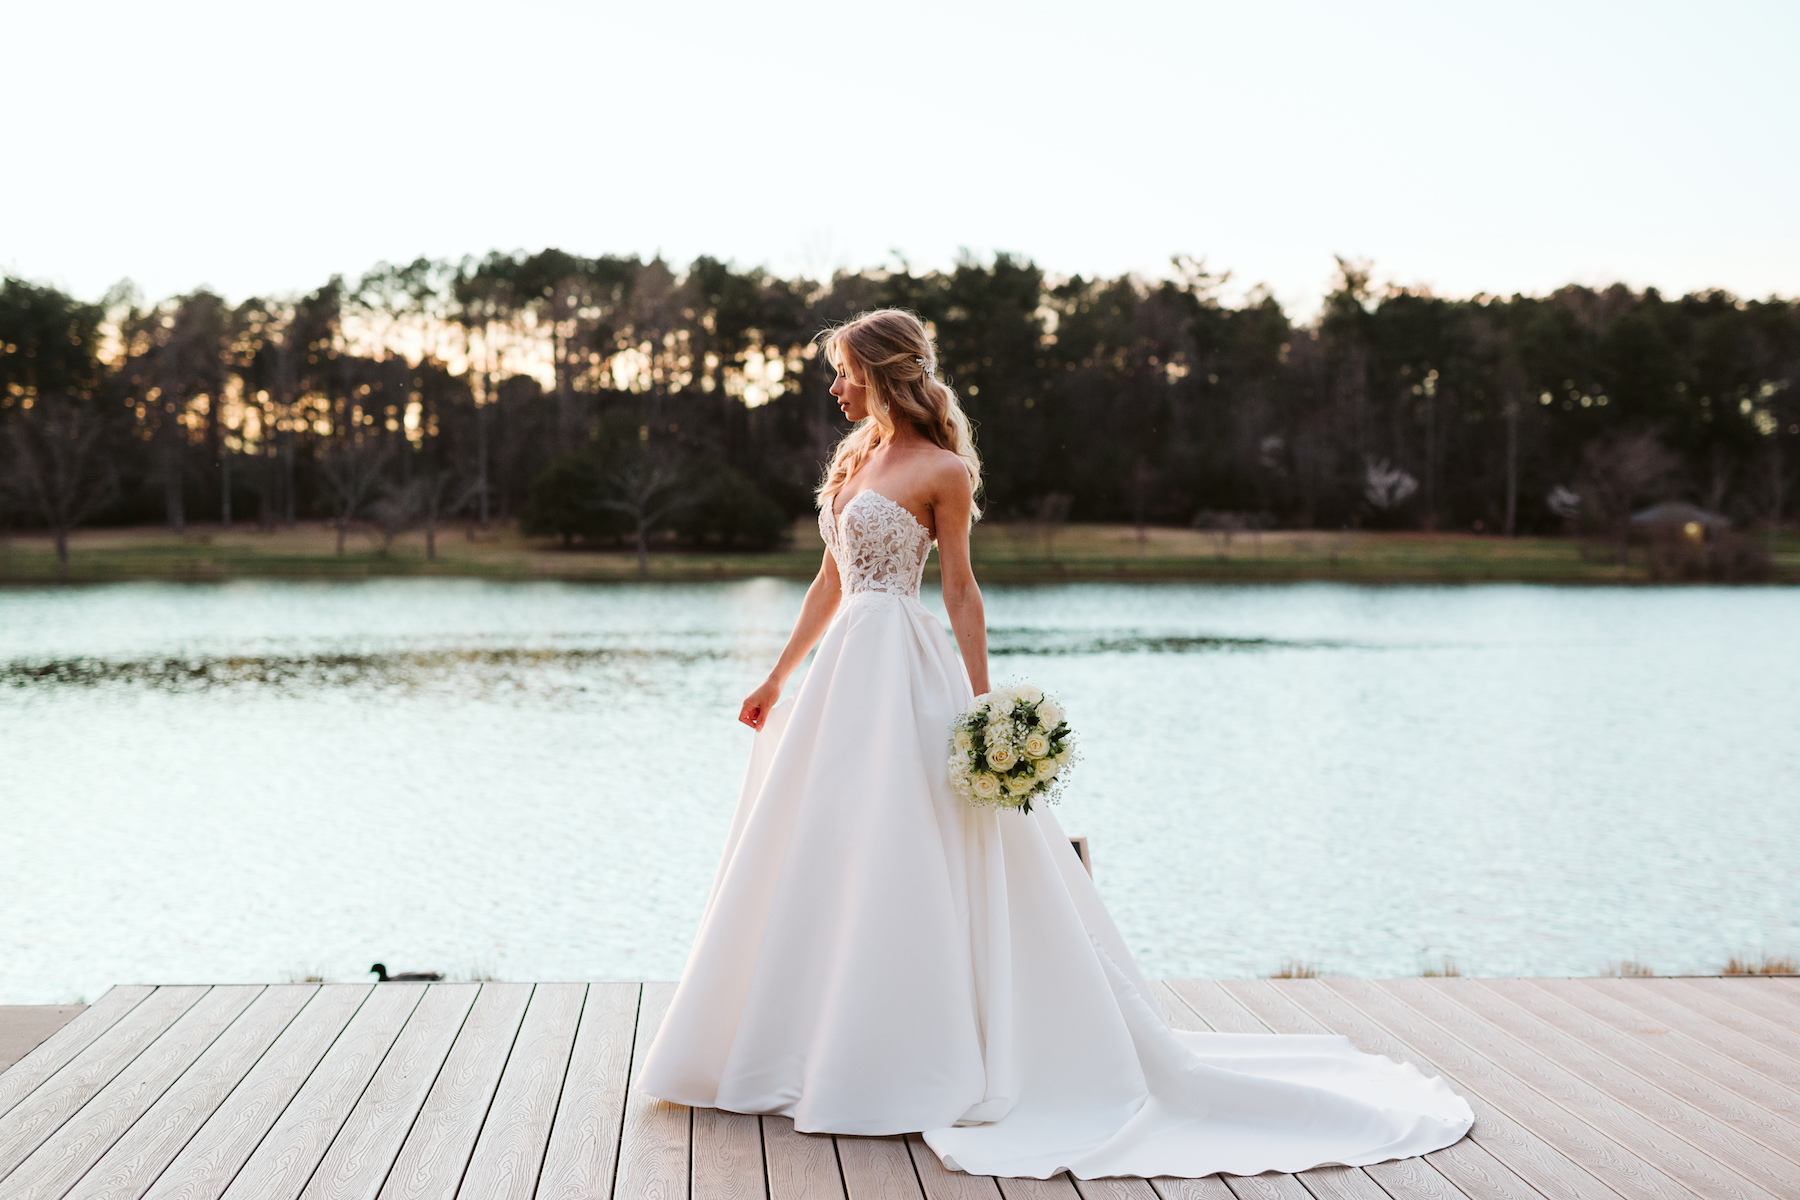 furman-university-bridals-paige-224.JPG